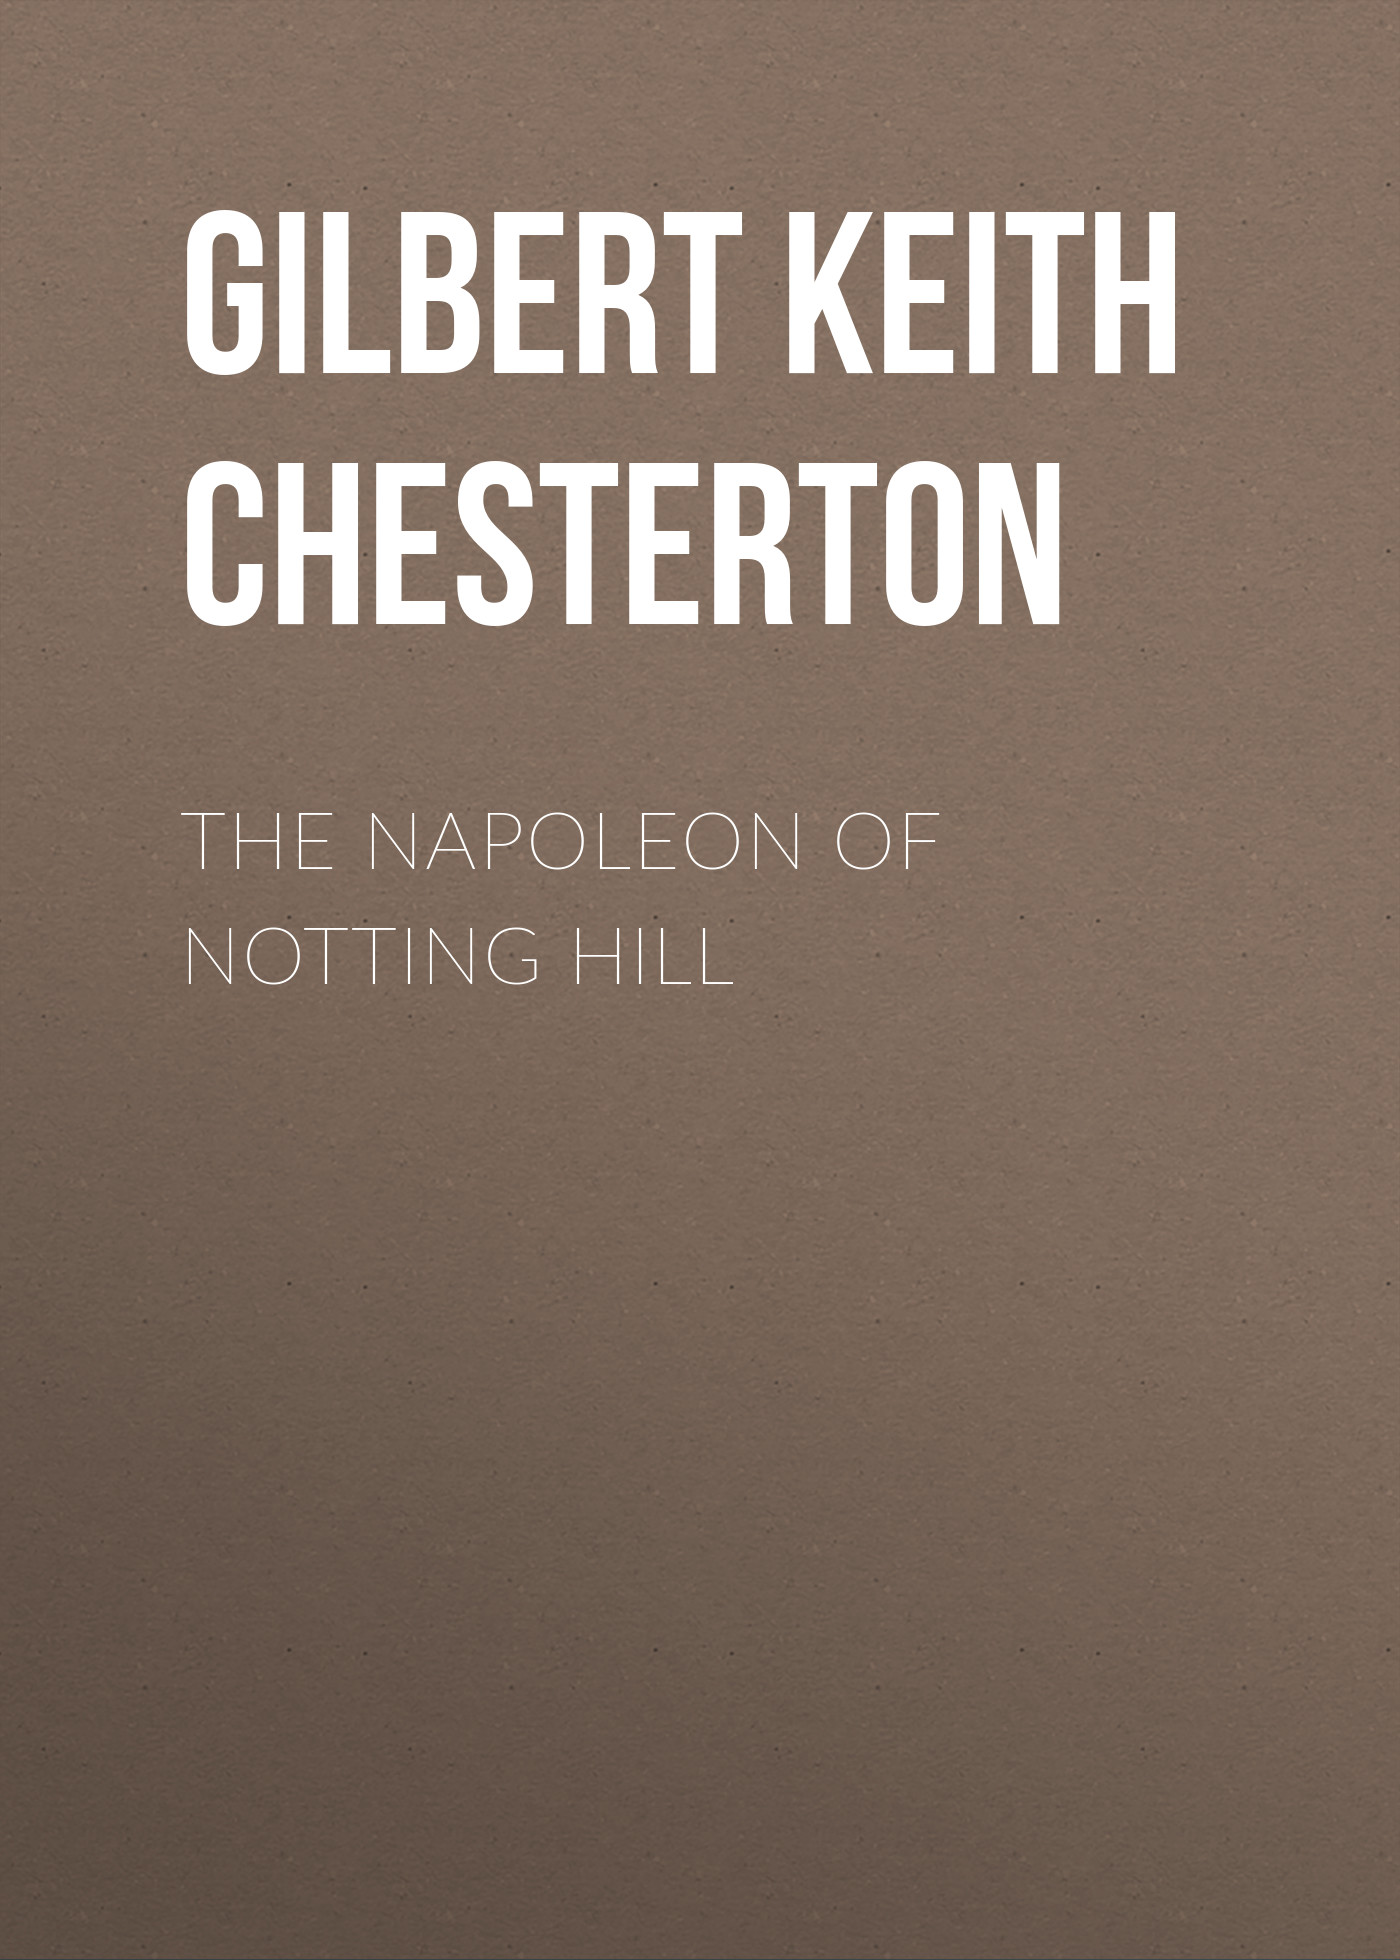 Gilbert Keith Chesterton The Napoleon of Notting Hill